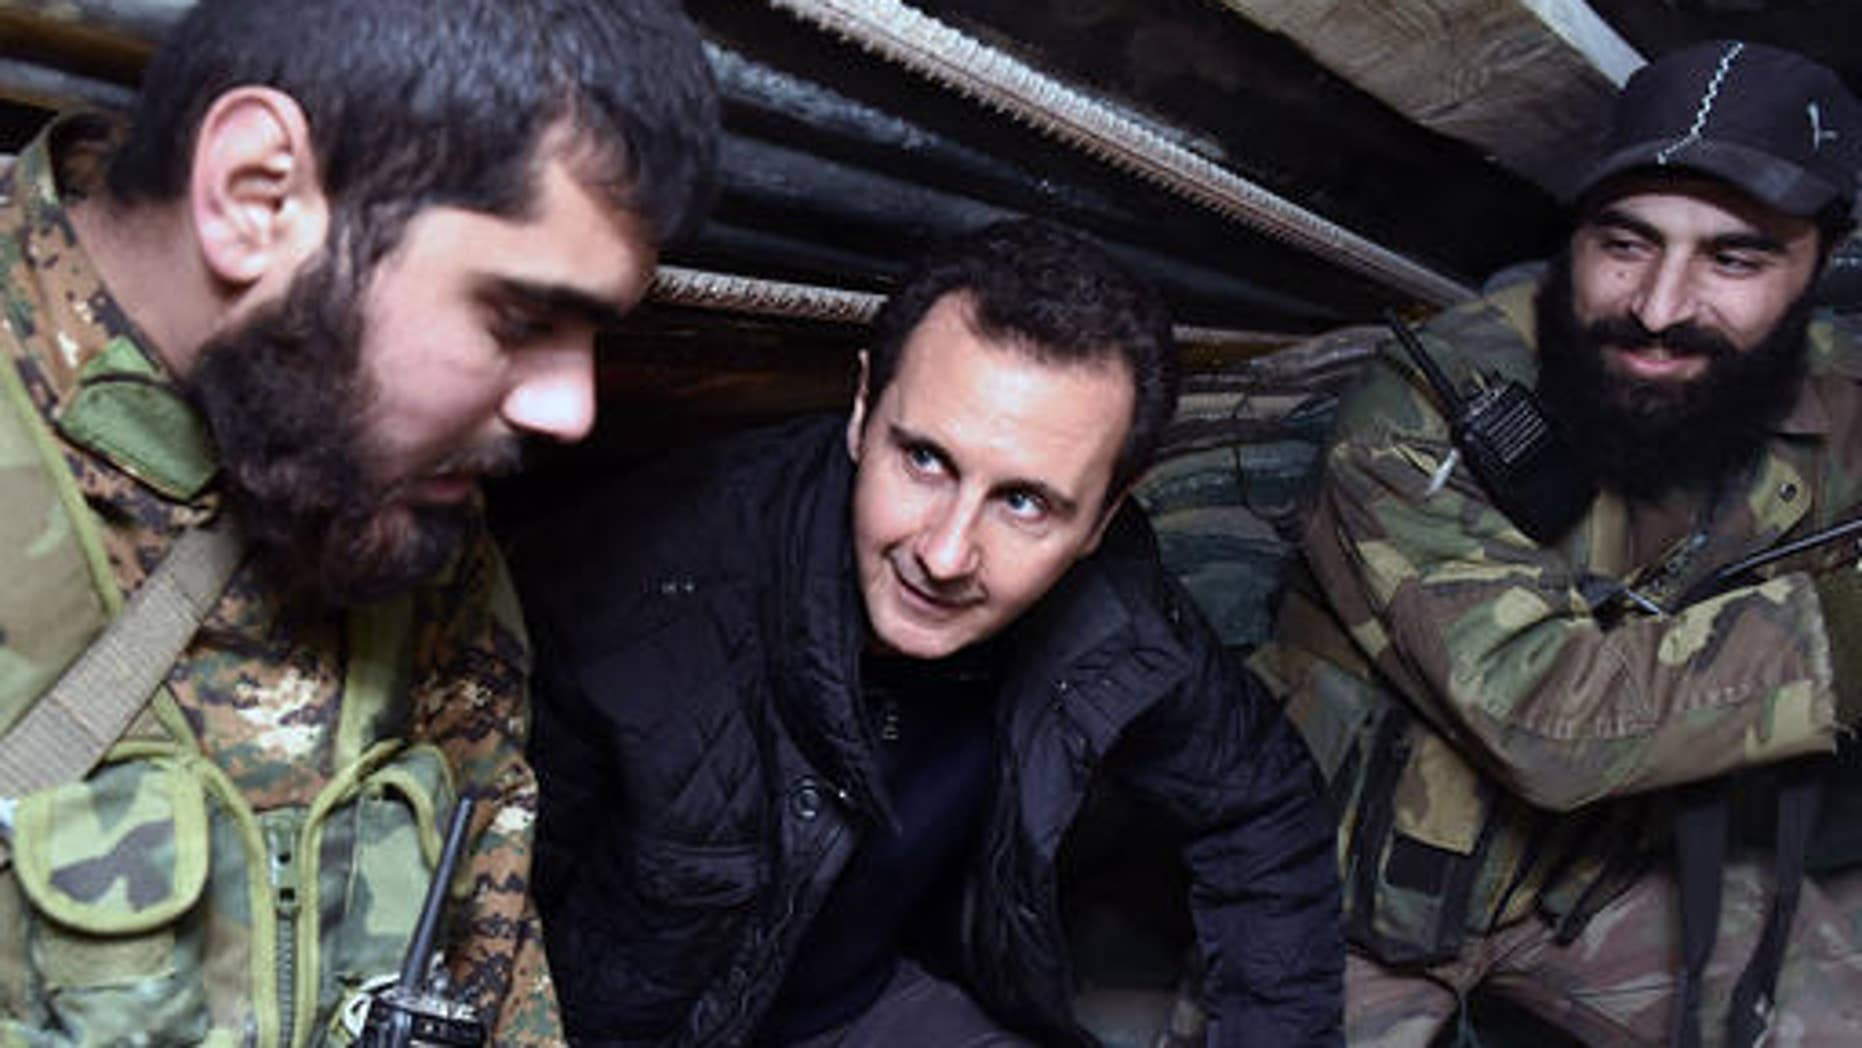 Syrian President Bashar Assad, center, speaks with Syrian troops during his visit to the front line in the eastern Damascus district of Jobar, Syria, on Dec. 31, 2014. (AP Photo)